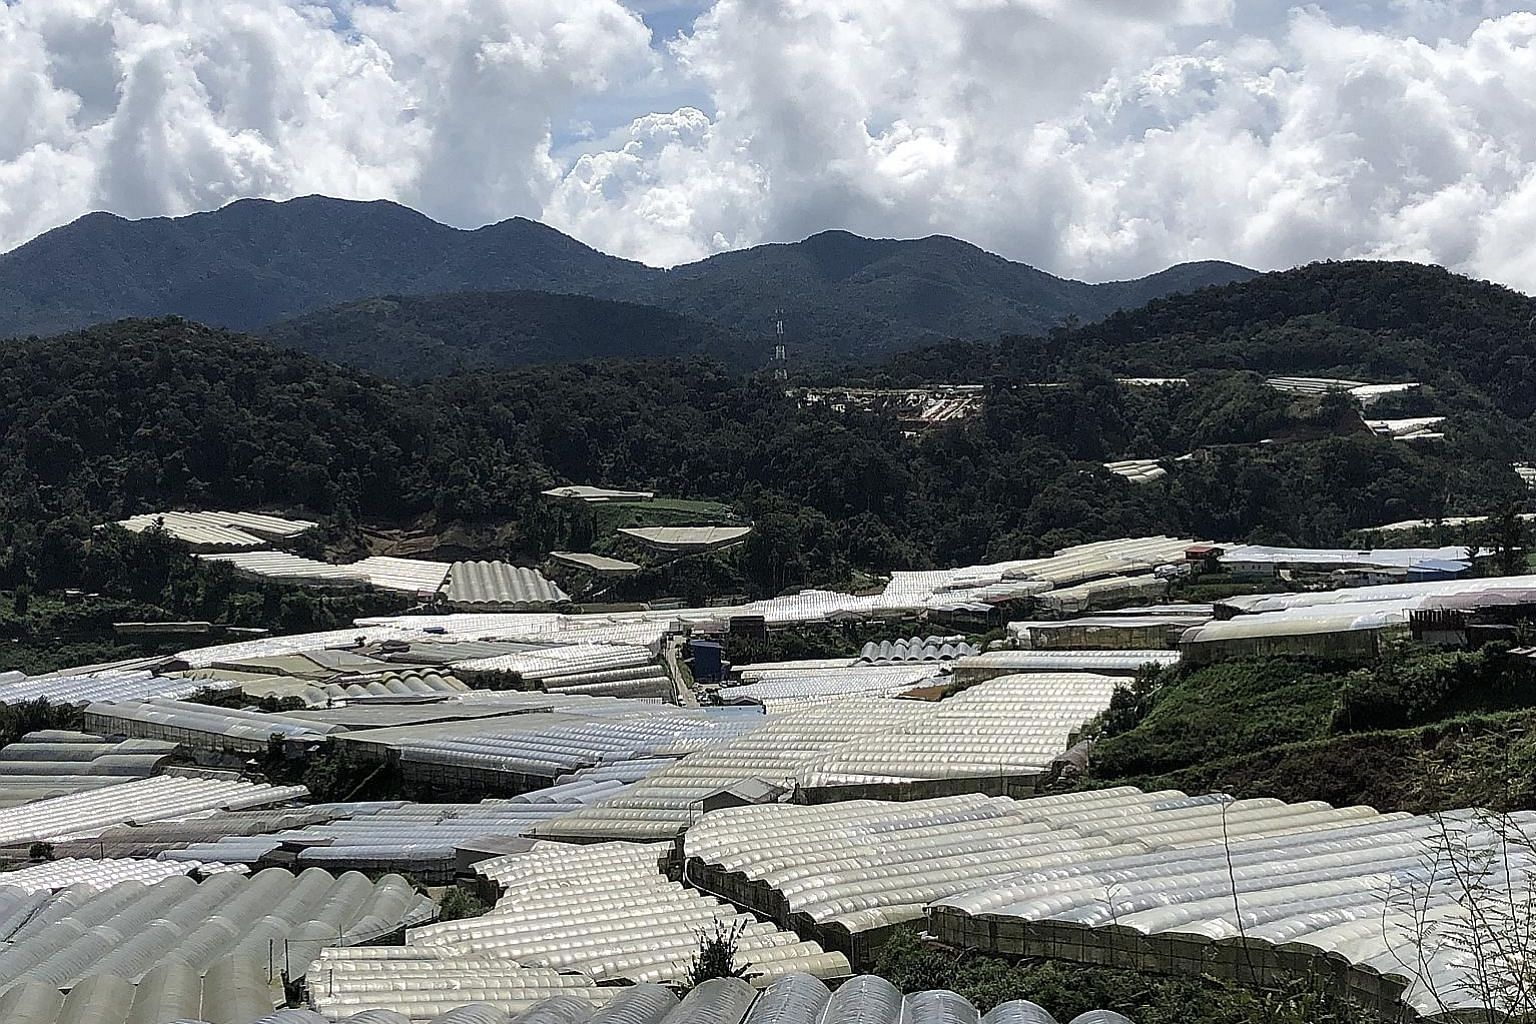 Large farms with white roofs in the Blue Valley region of Cameron Highlands, taking over what was once covered by rainforest.